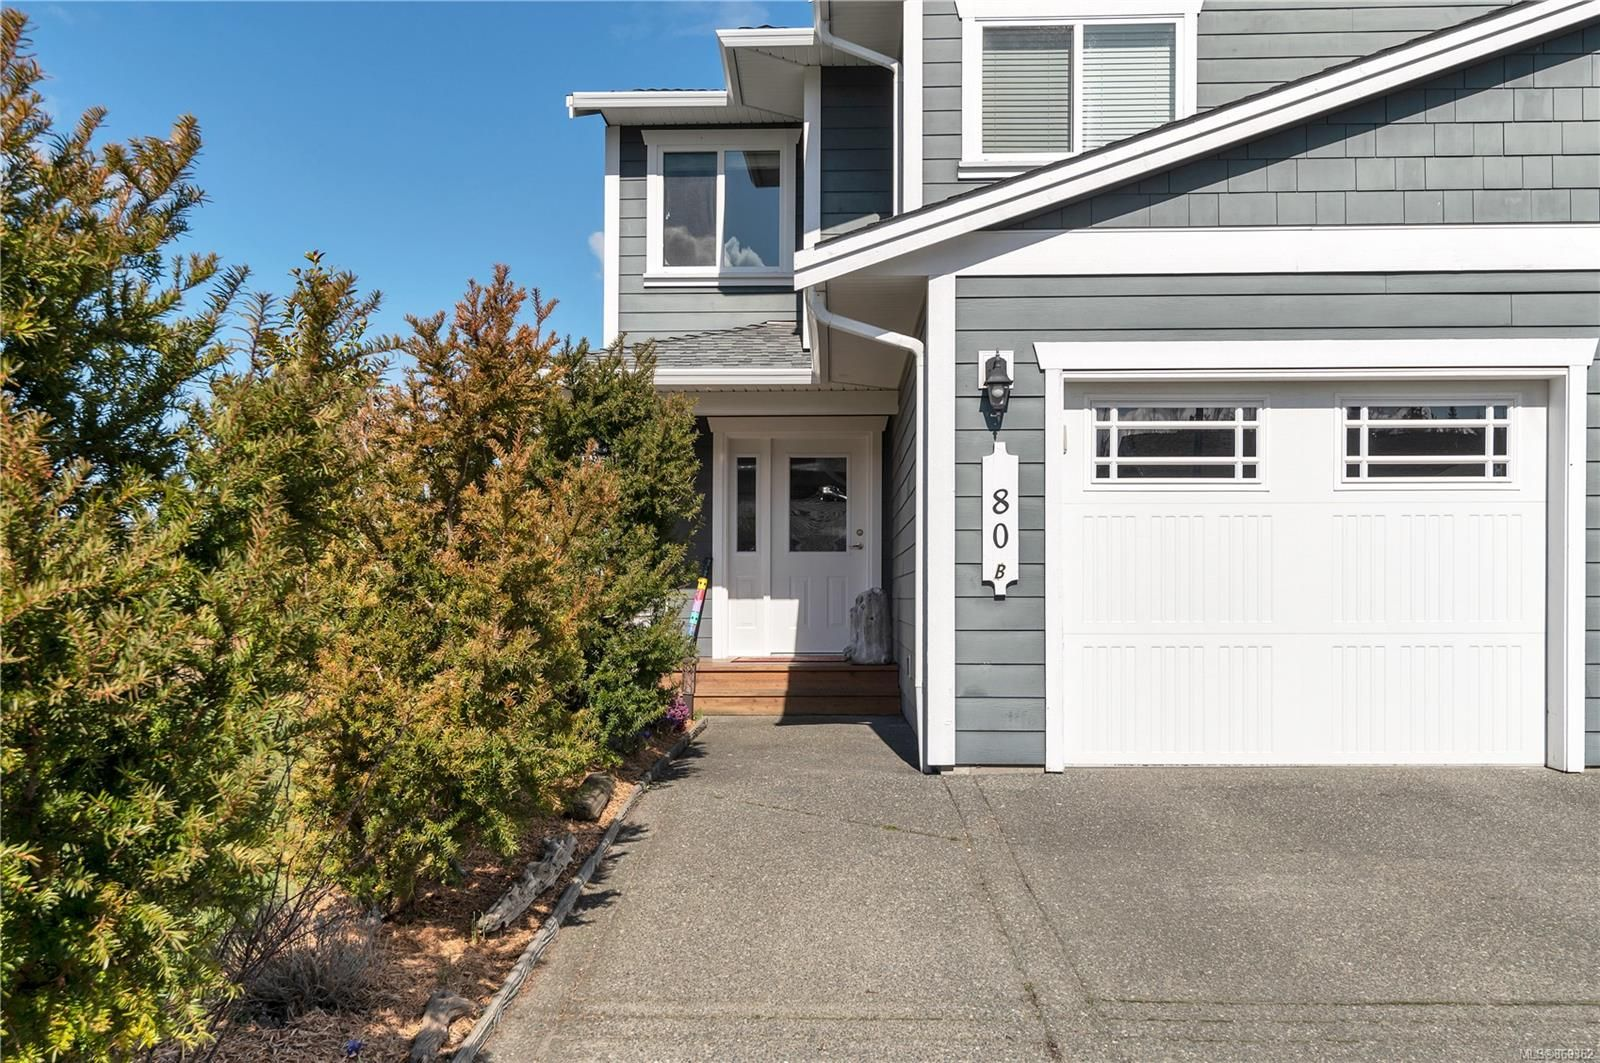 Main Photo: B 80 Carolina Dr in : CR Campbell River South Half Duplex for sale (Campbell River)  : MLS®# 869362